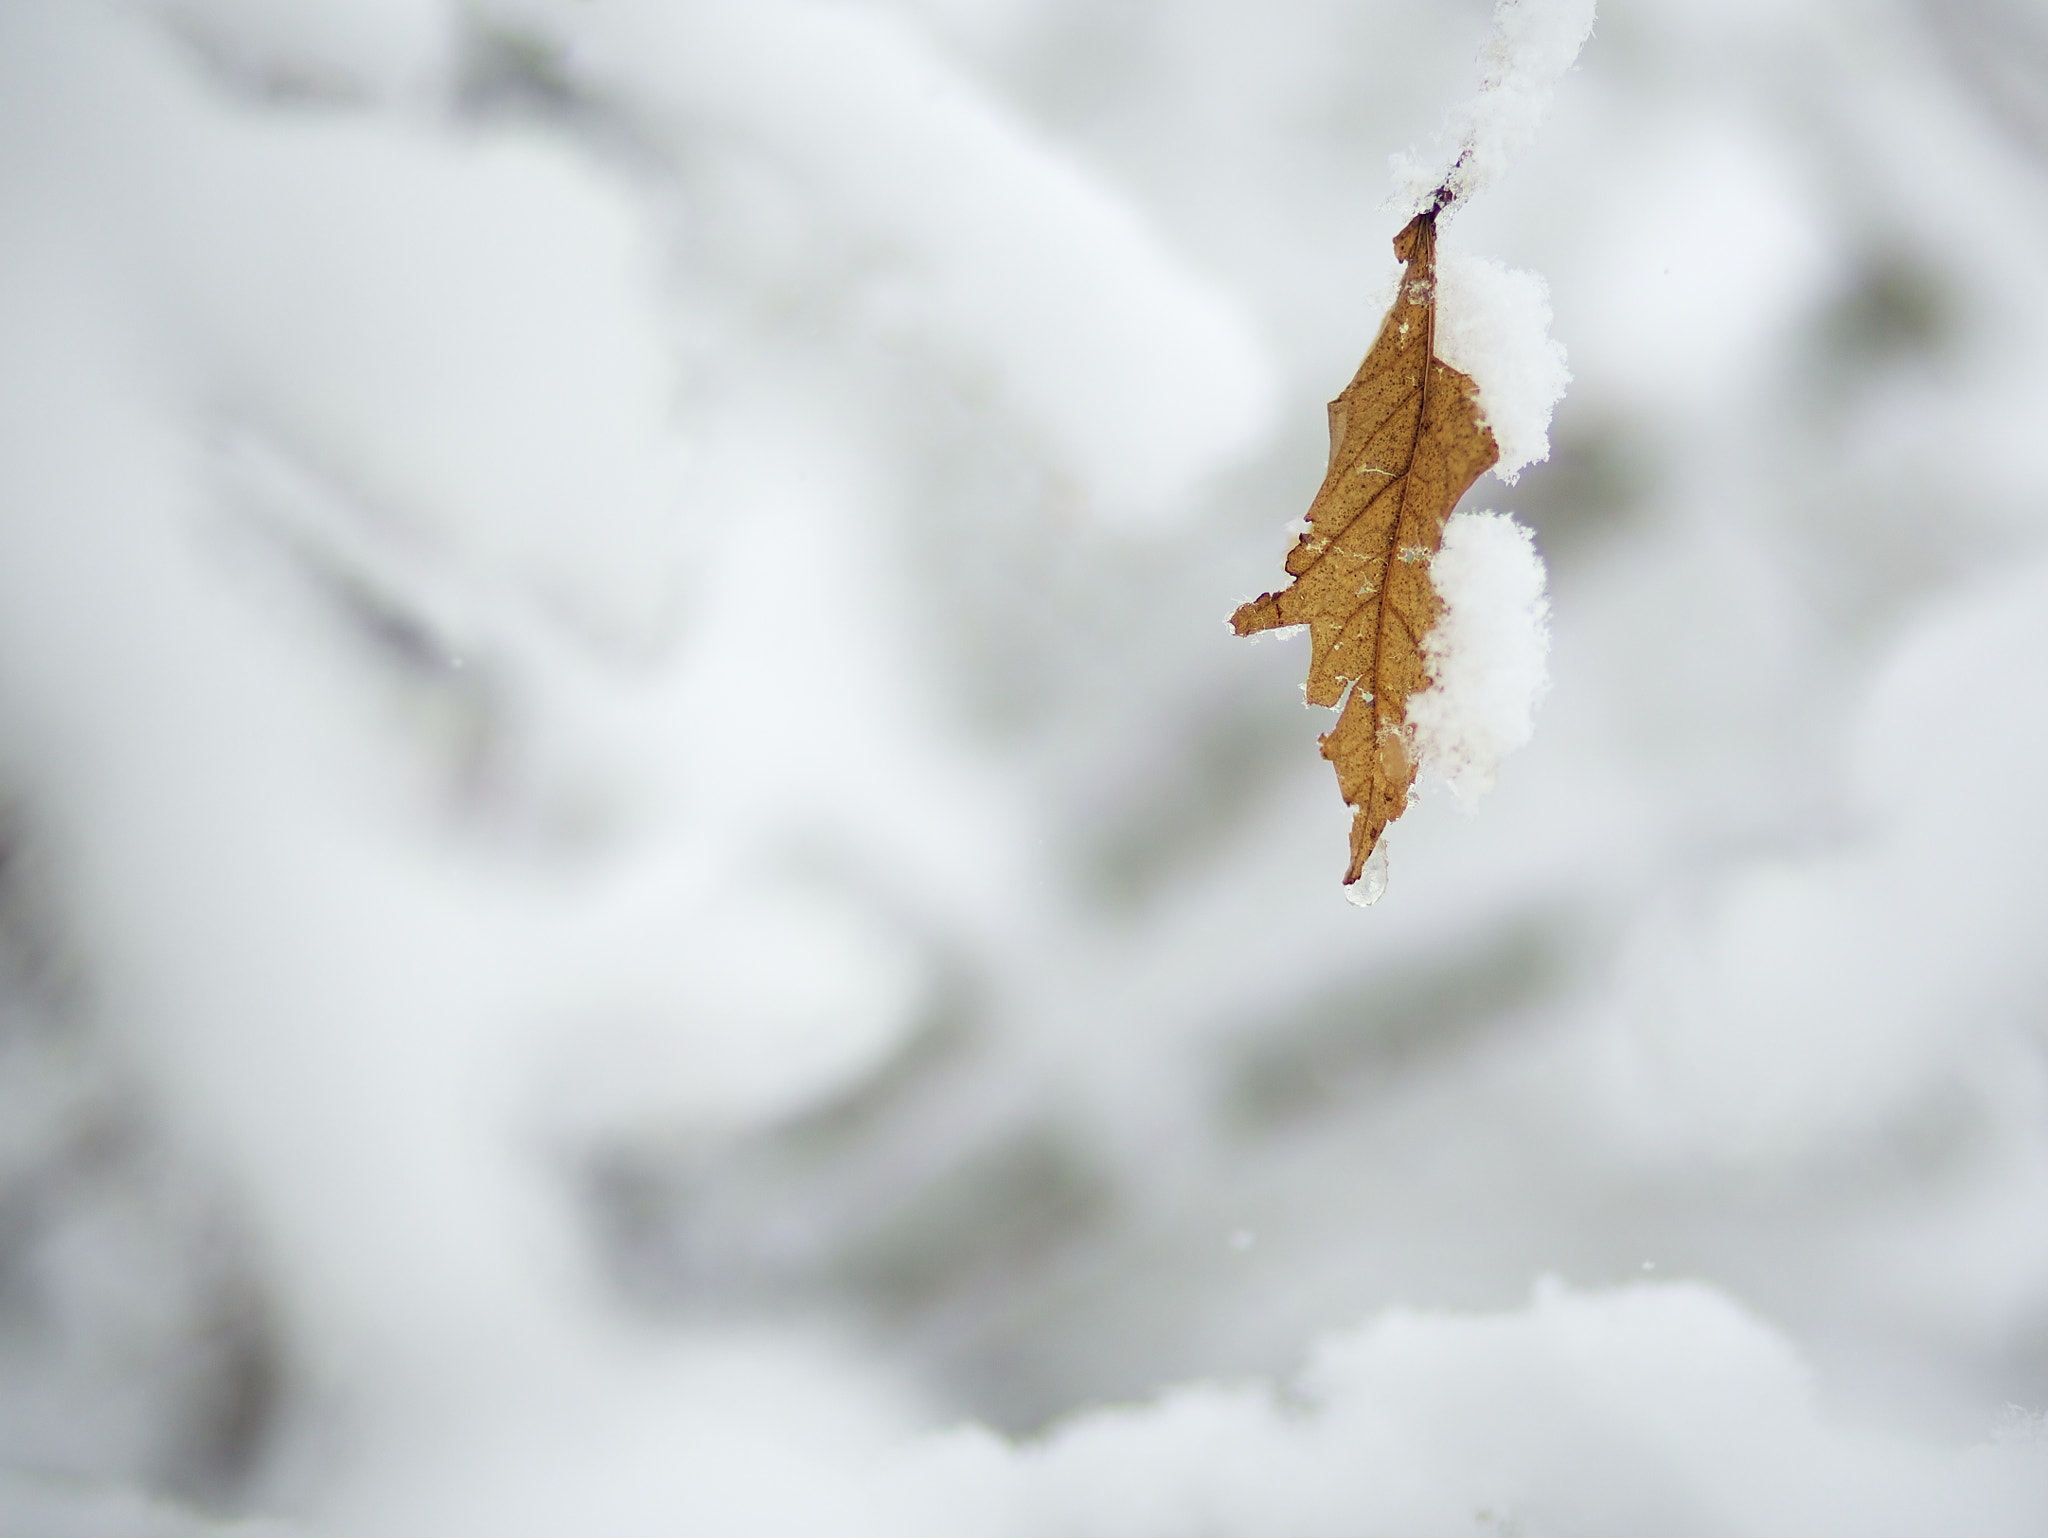 Photograph Snow swallows a leaf that held on for dear life by mitch aunger on 500px